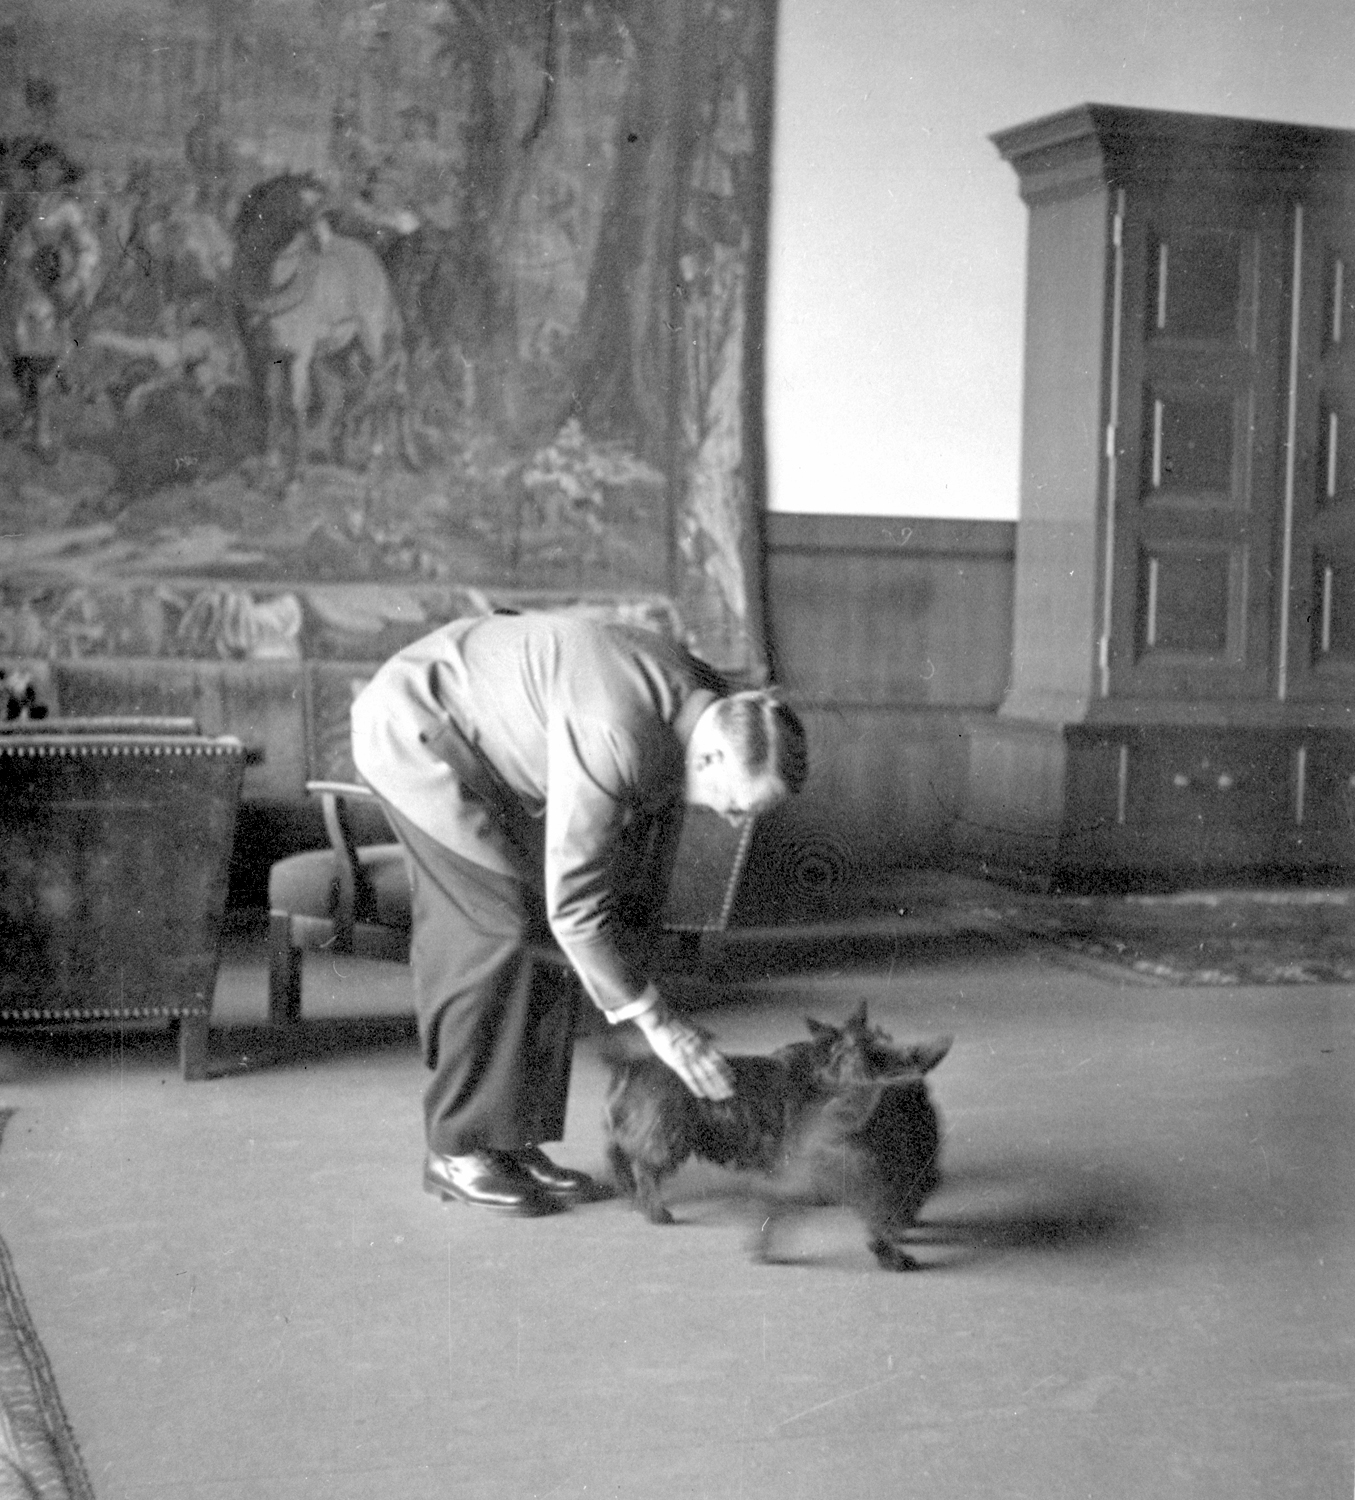 Adolf Hitler petting Eva Braun's dogs in the Berghof great hall, from Eva Braun's albums